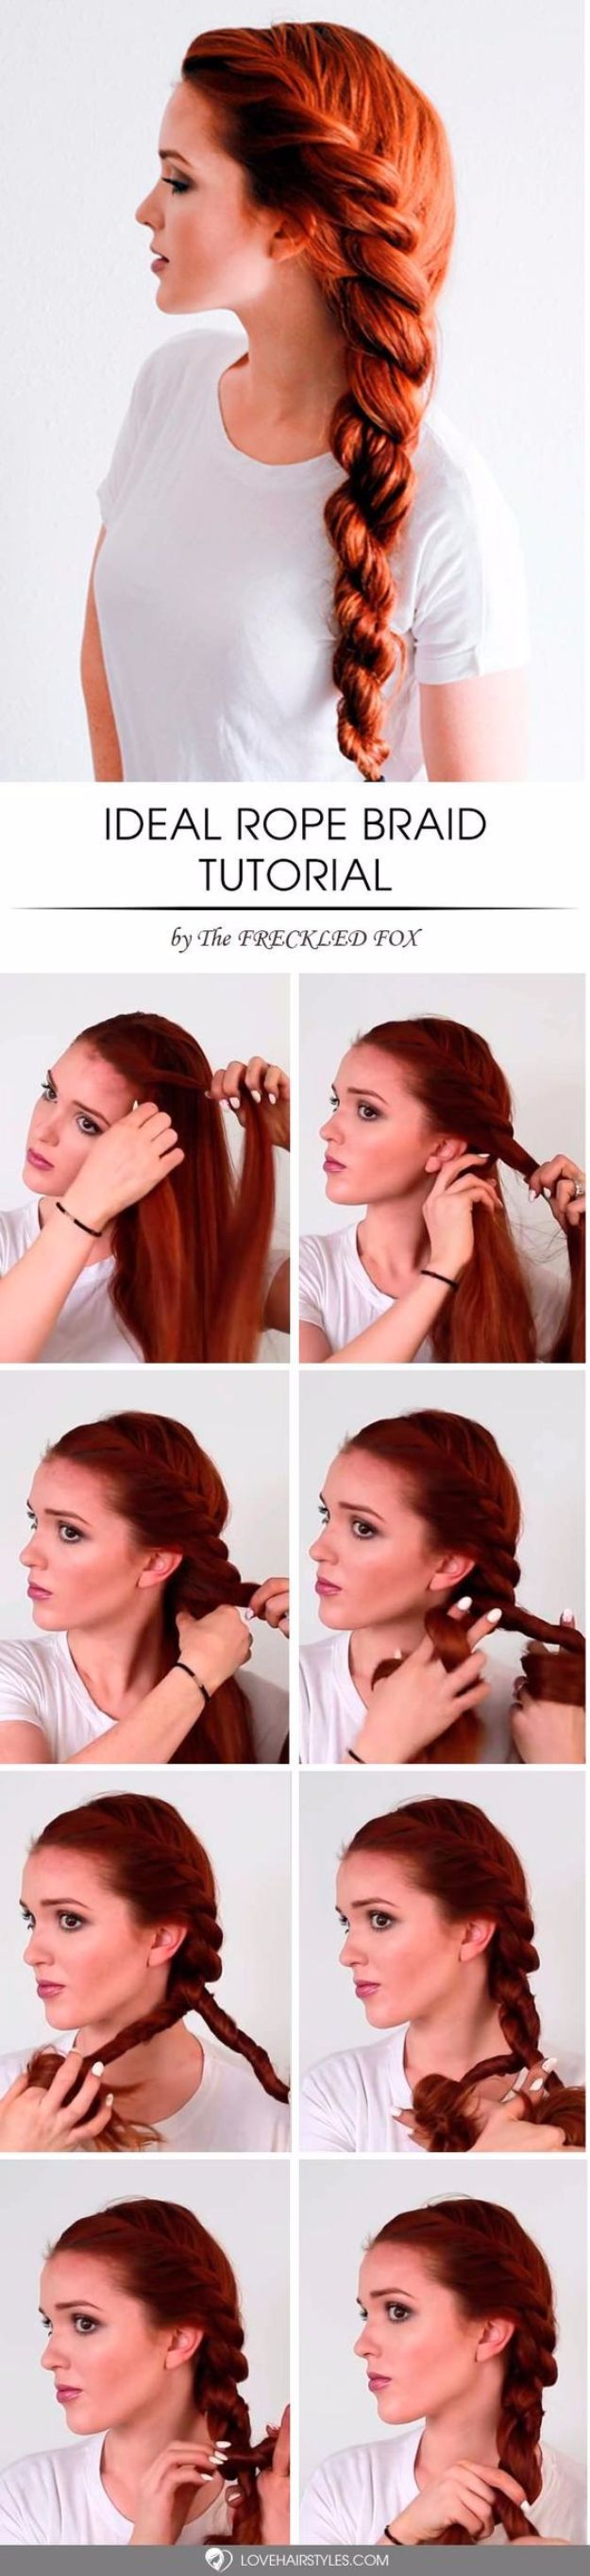 Easy Braids With Tutorials - Ideal Rope Braid - Cute Braiding Tutorials for Teens, Girls and Women - Easy Step by Step Braid Ideas - Quick Hairstyles for School - Creative Braids for Teenagers - Tutorial and Instructions for Hair Braiding http://diyprojectsforteens.com/easy-braids-tutorials